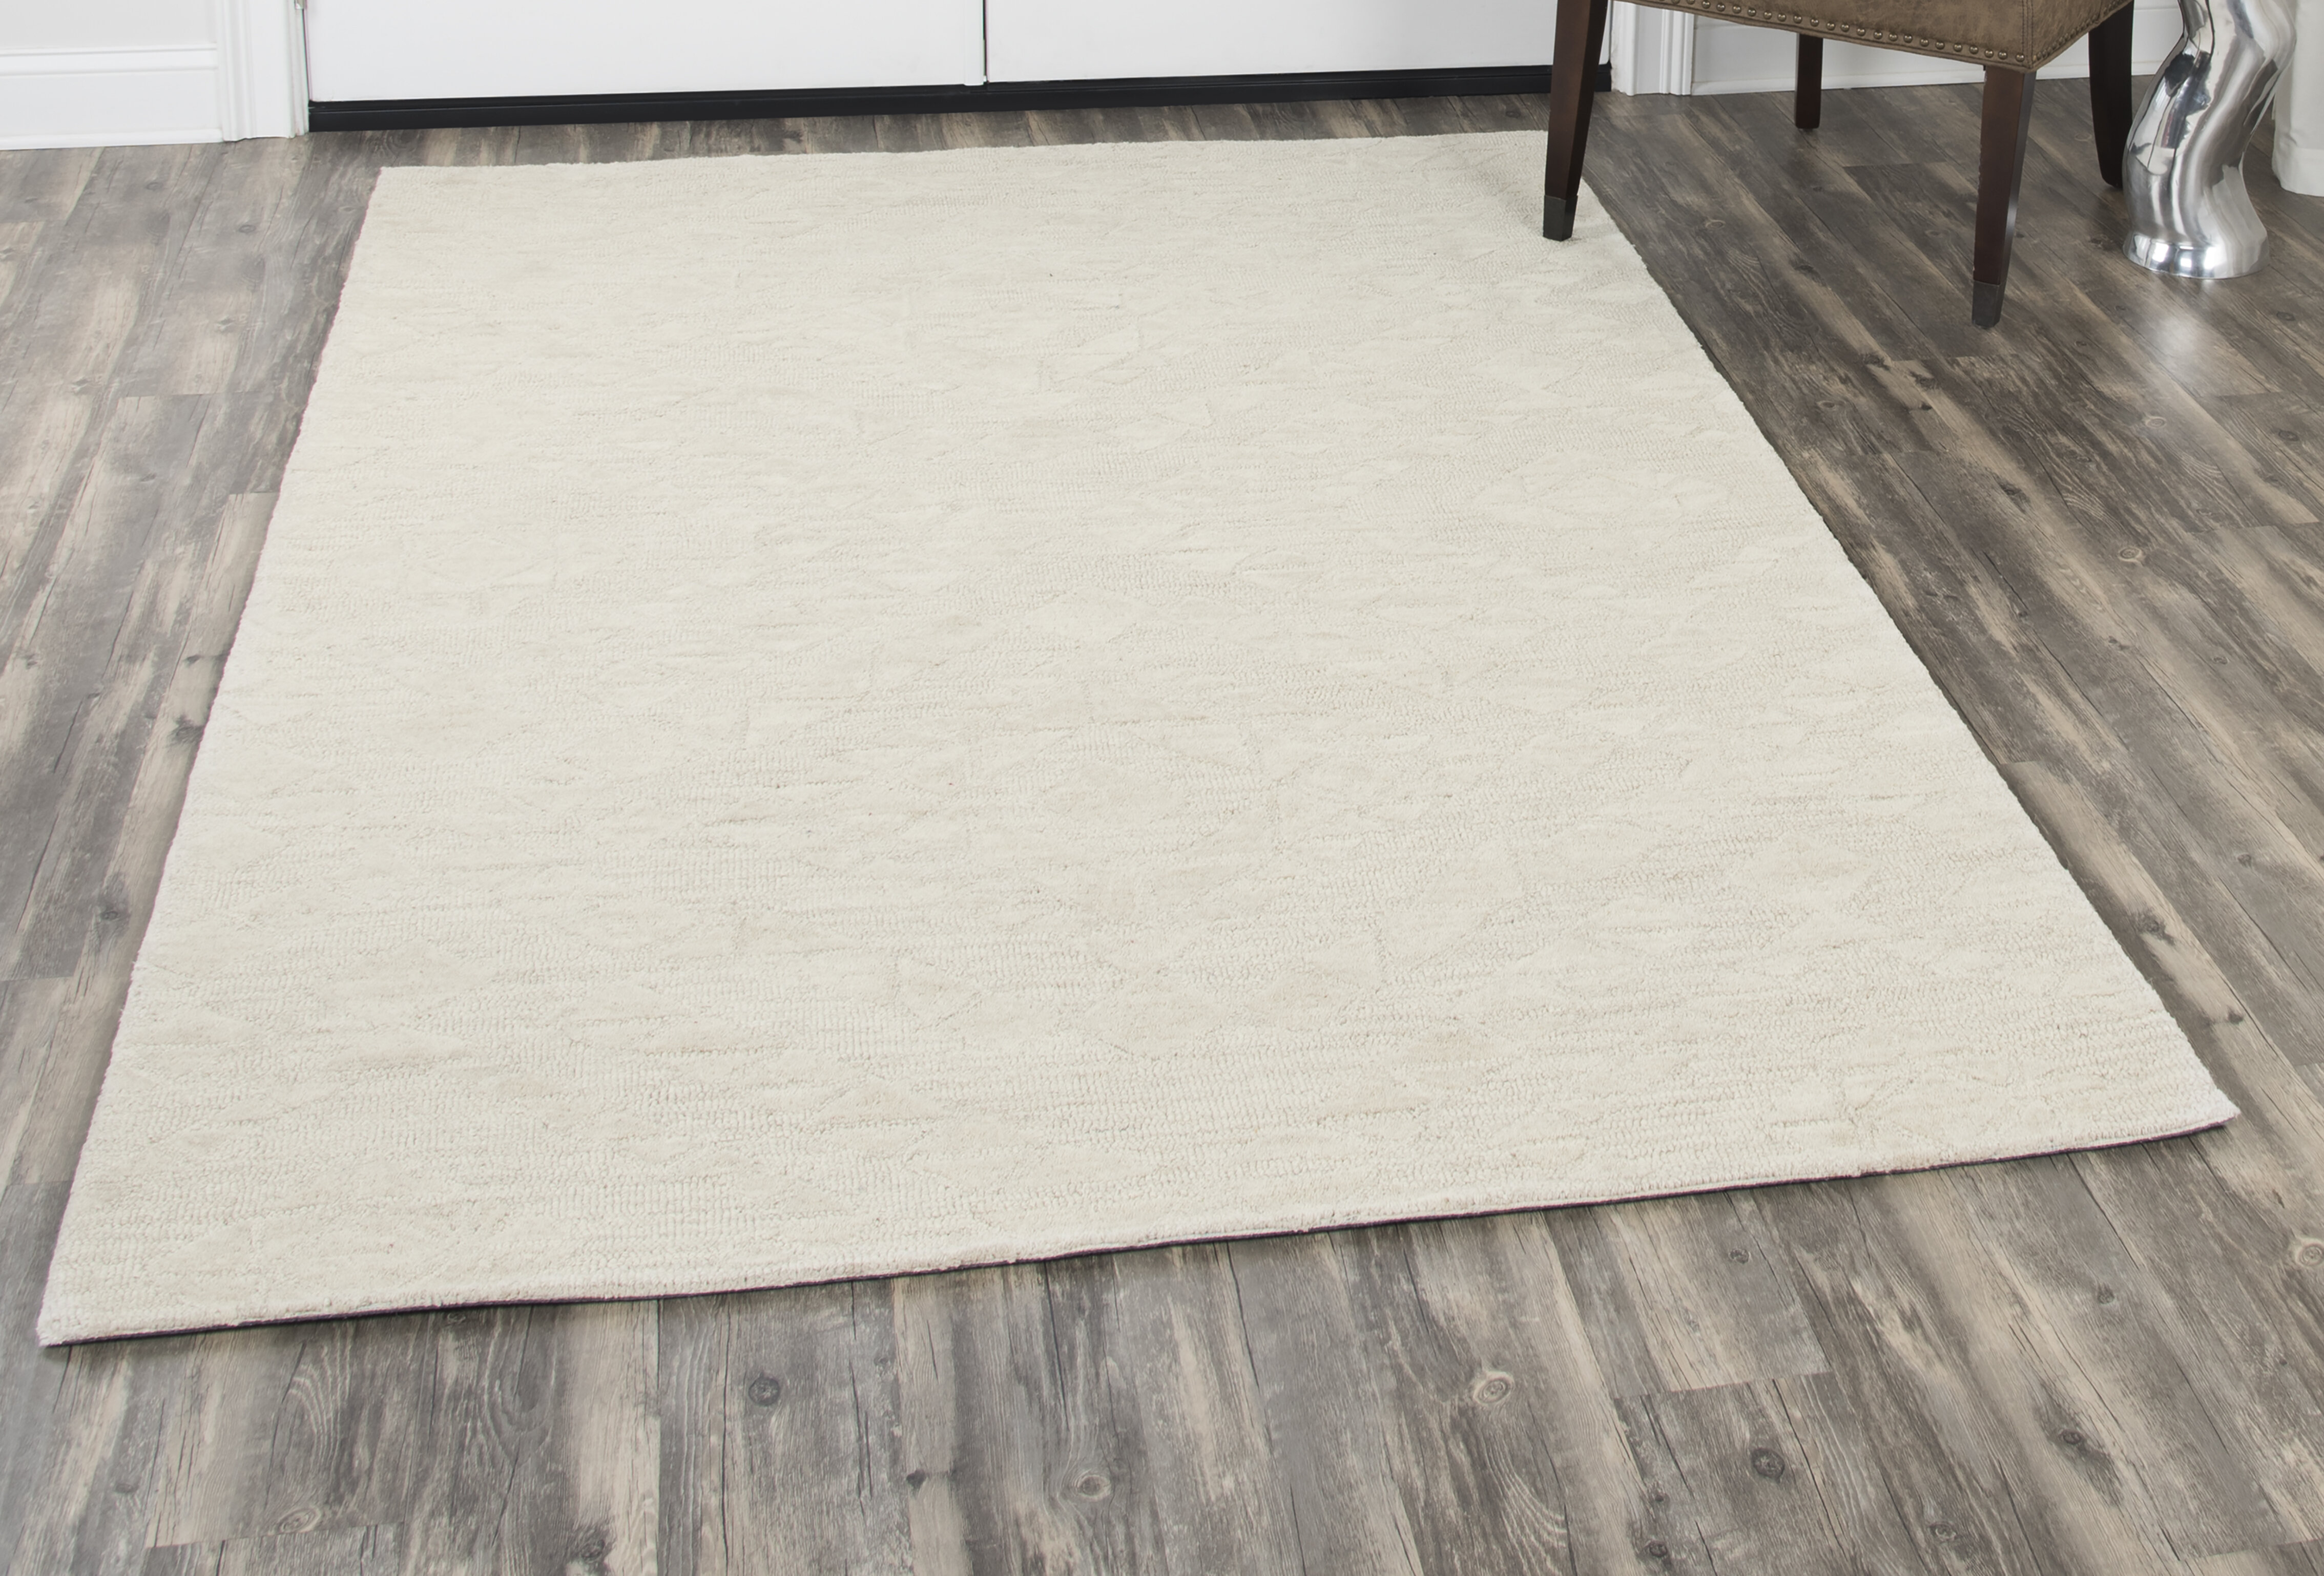 Red Barrel Studio Phan Hand Tufted Wool Beige Area Rug Reviews Wayfair Ca